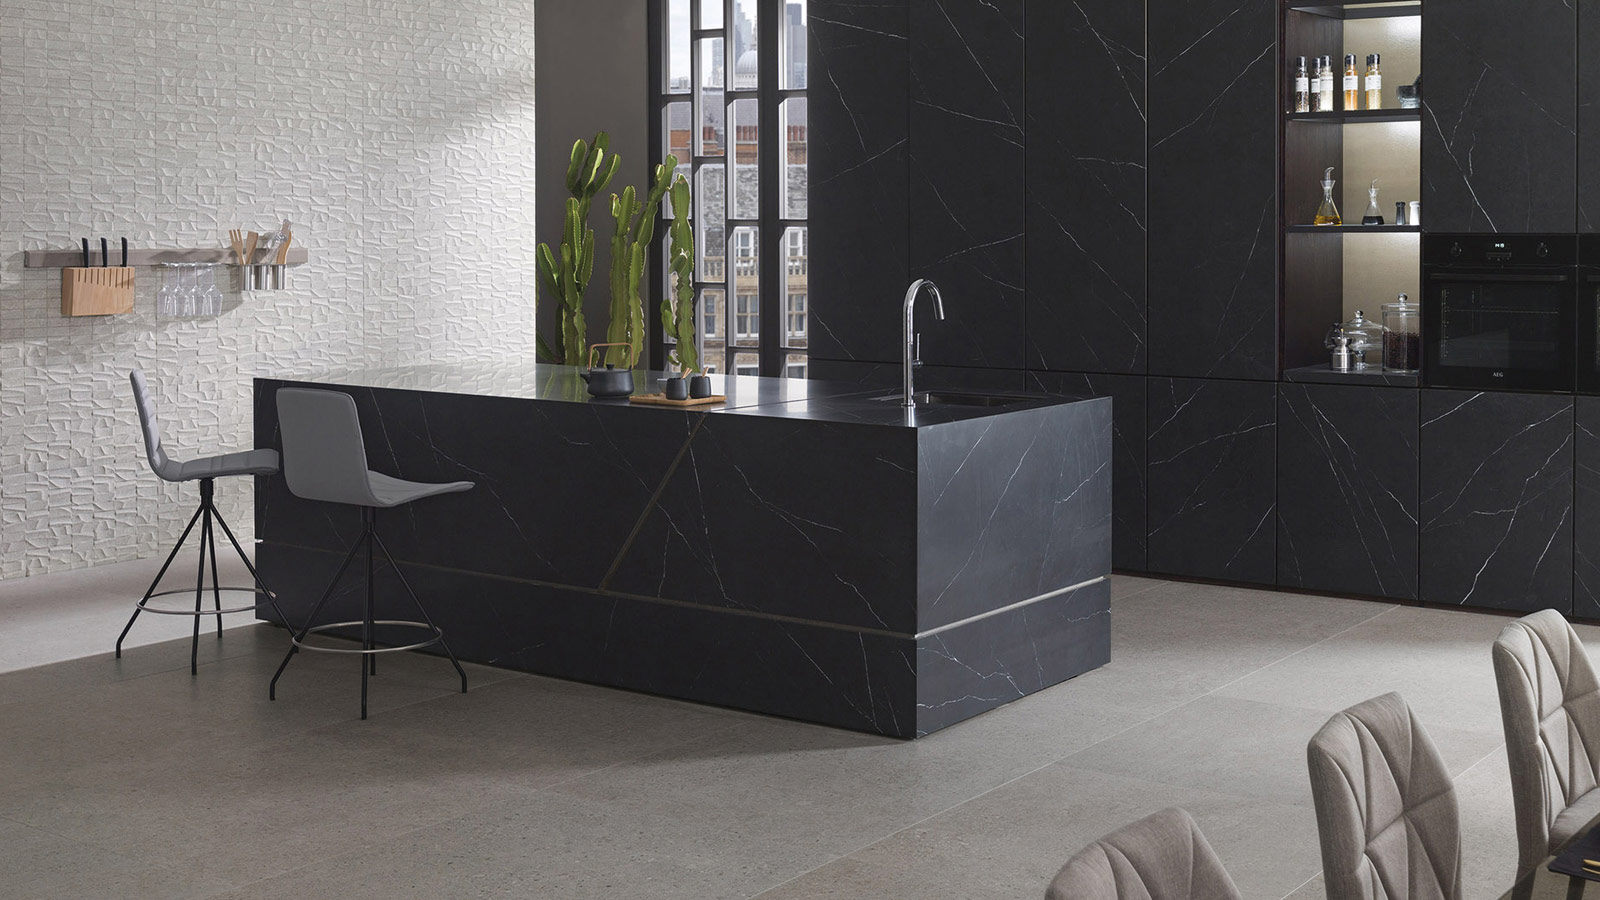 Prada by Porcelanosa, a sophisticated collection based on natural stone